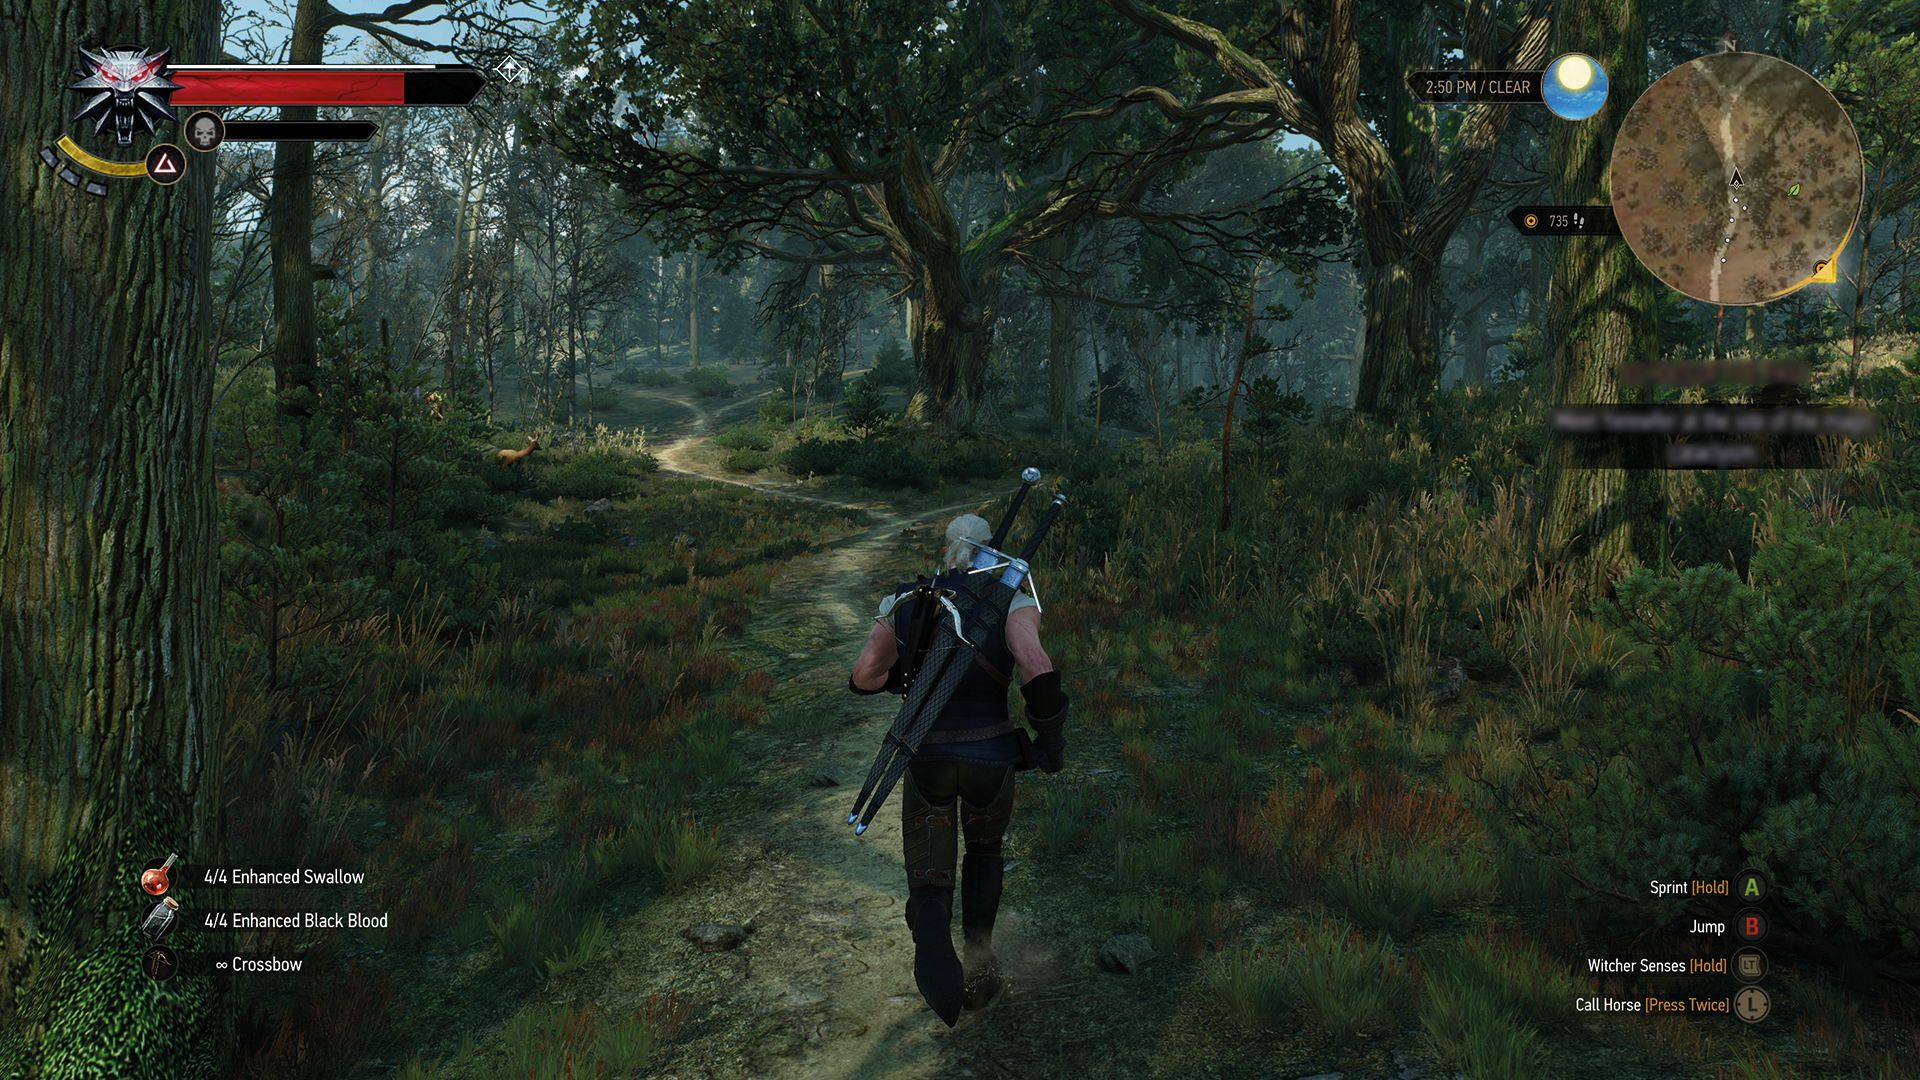 the_witcher_3_wild_hunt_real_witchers_wear_short_sleeves_when_jogging_in_the_woods_1430900917